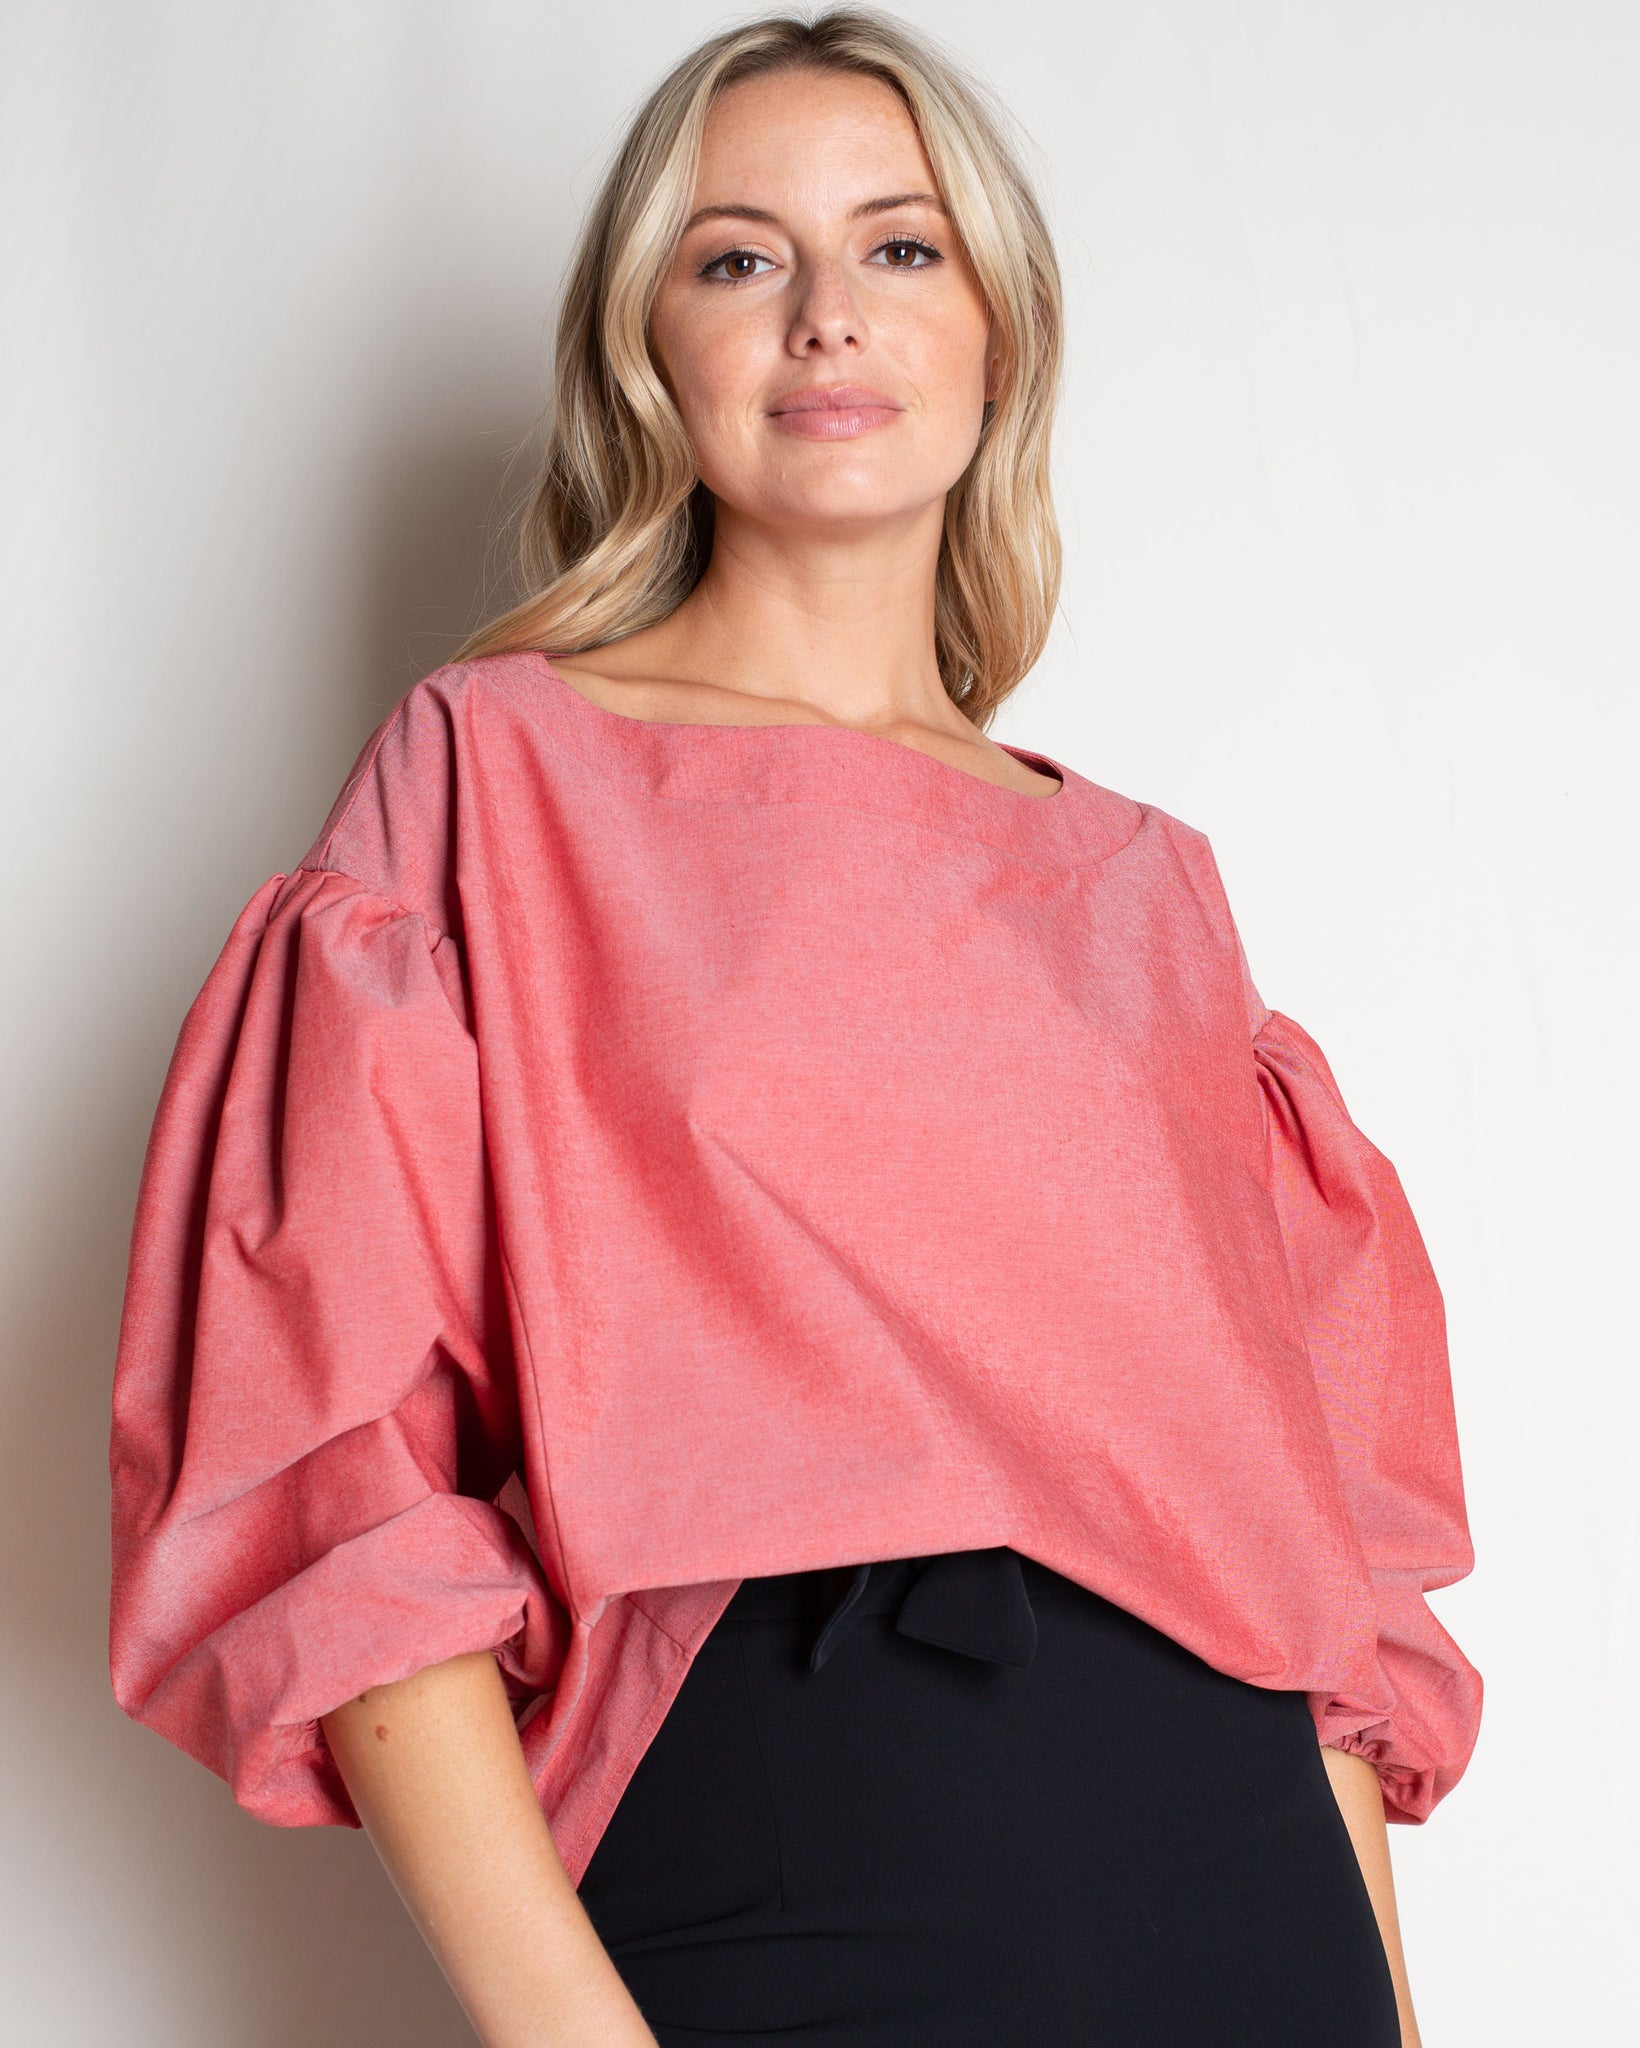 The Jewel Blouse in Cotton